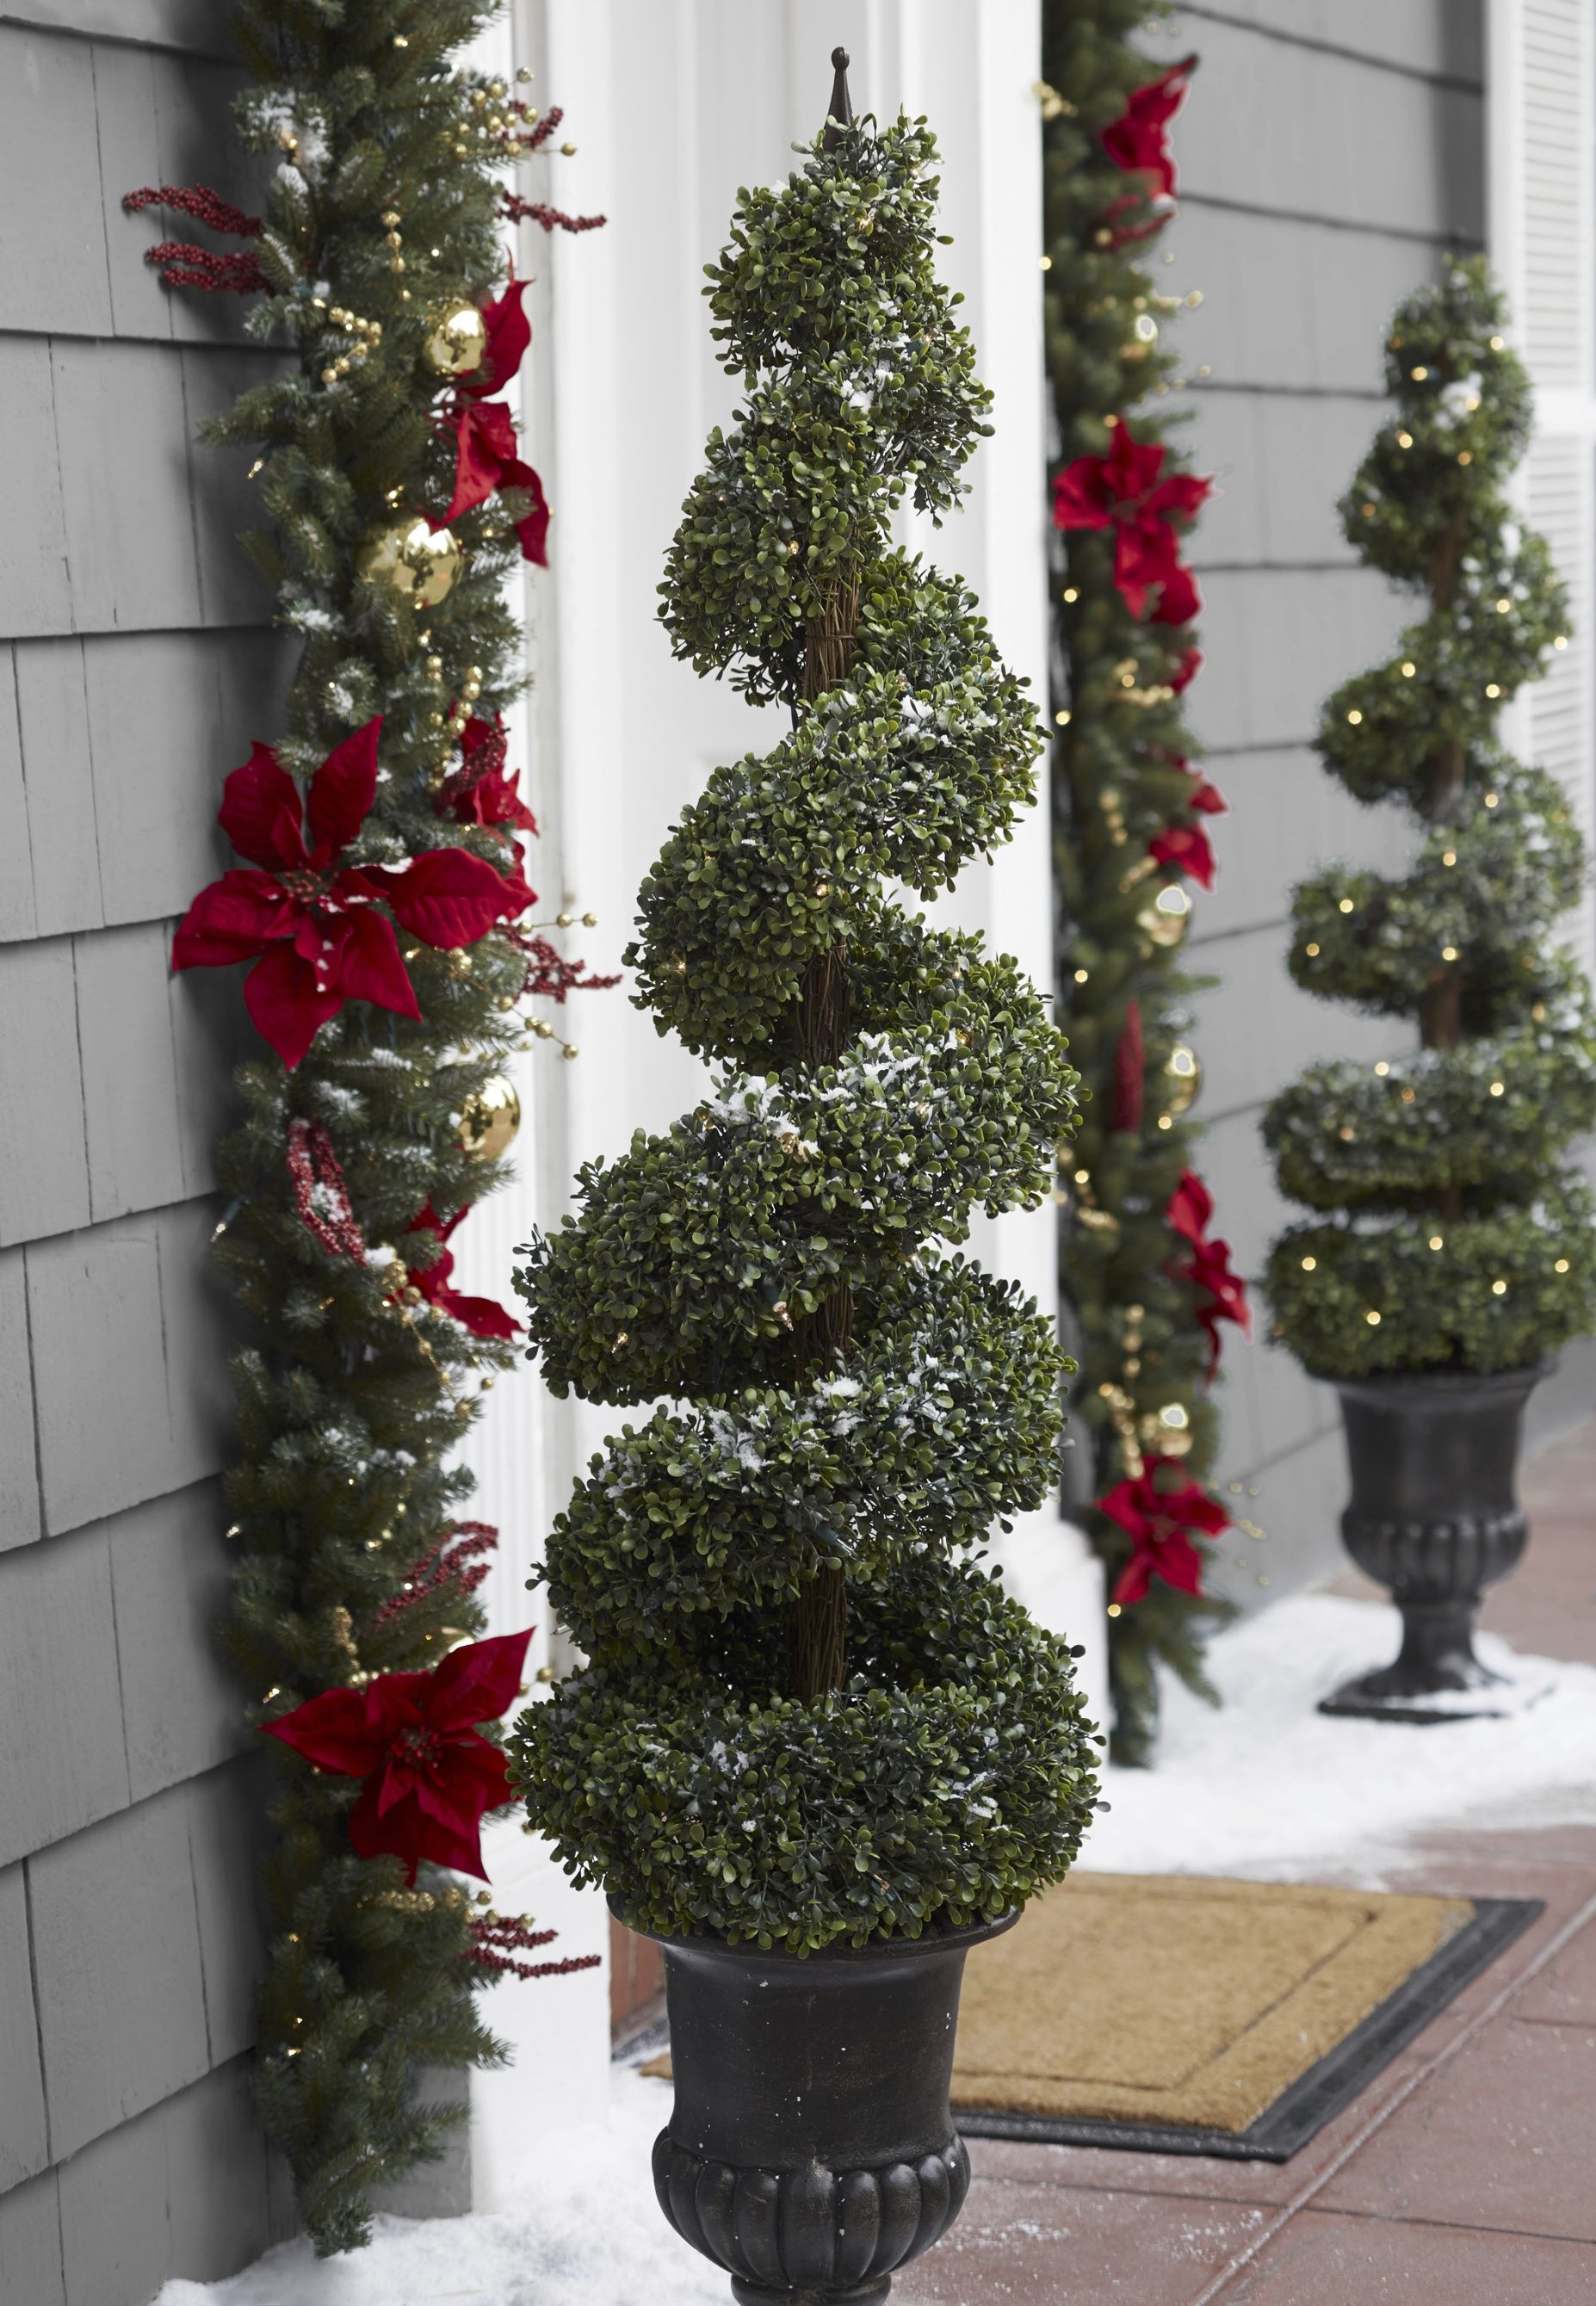 Create A Cohesive Classic Christmas Look With Beautiful Garland And Prelit Decorative Trees Outside Your Home